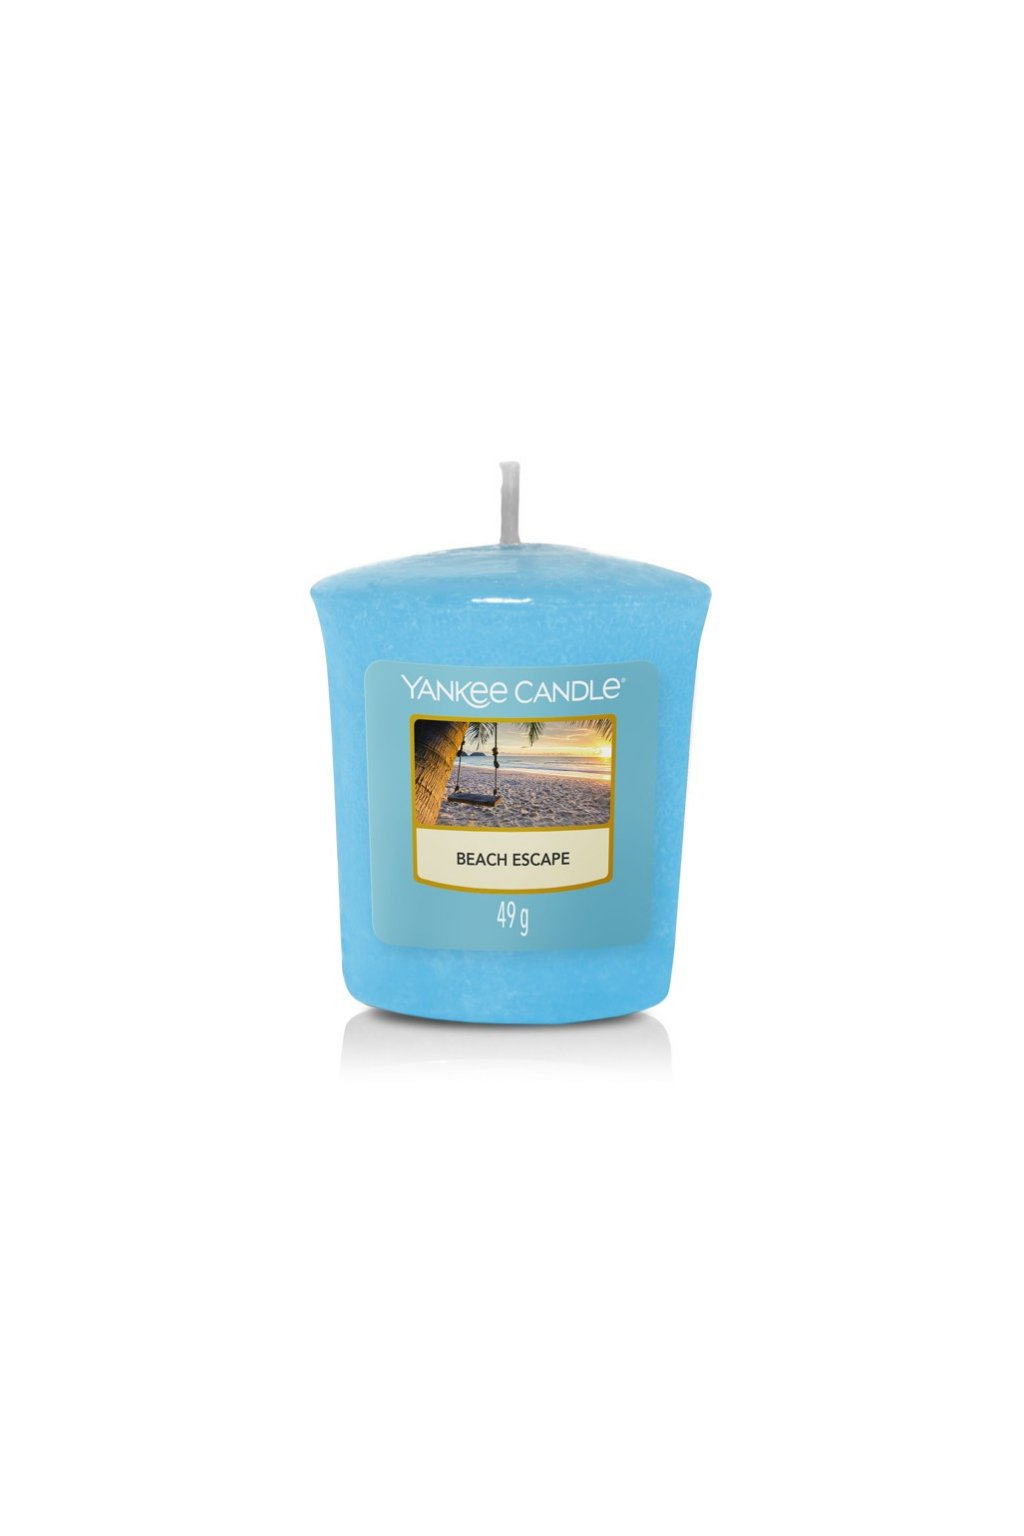 Yankee Candle Beach Escape 49g